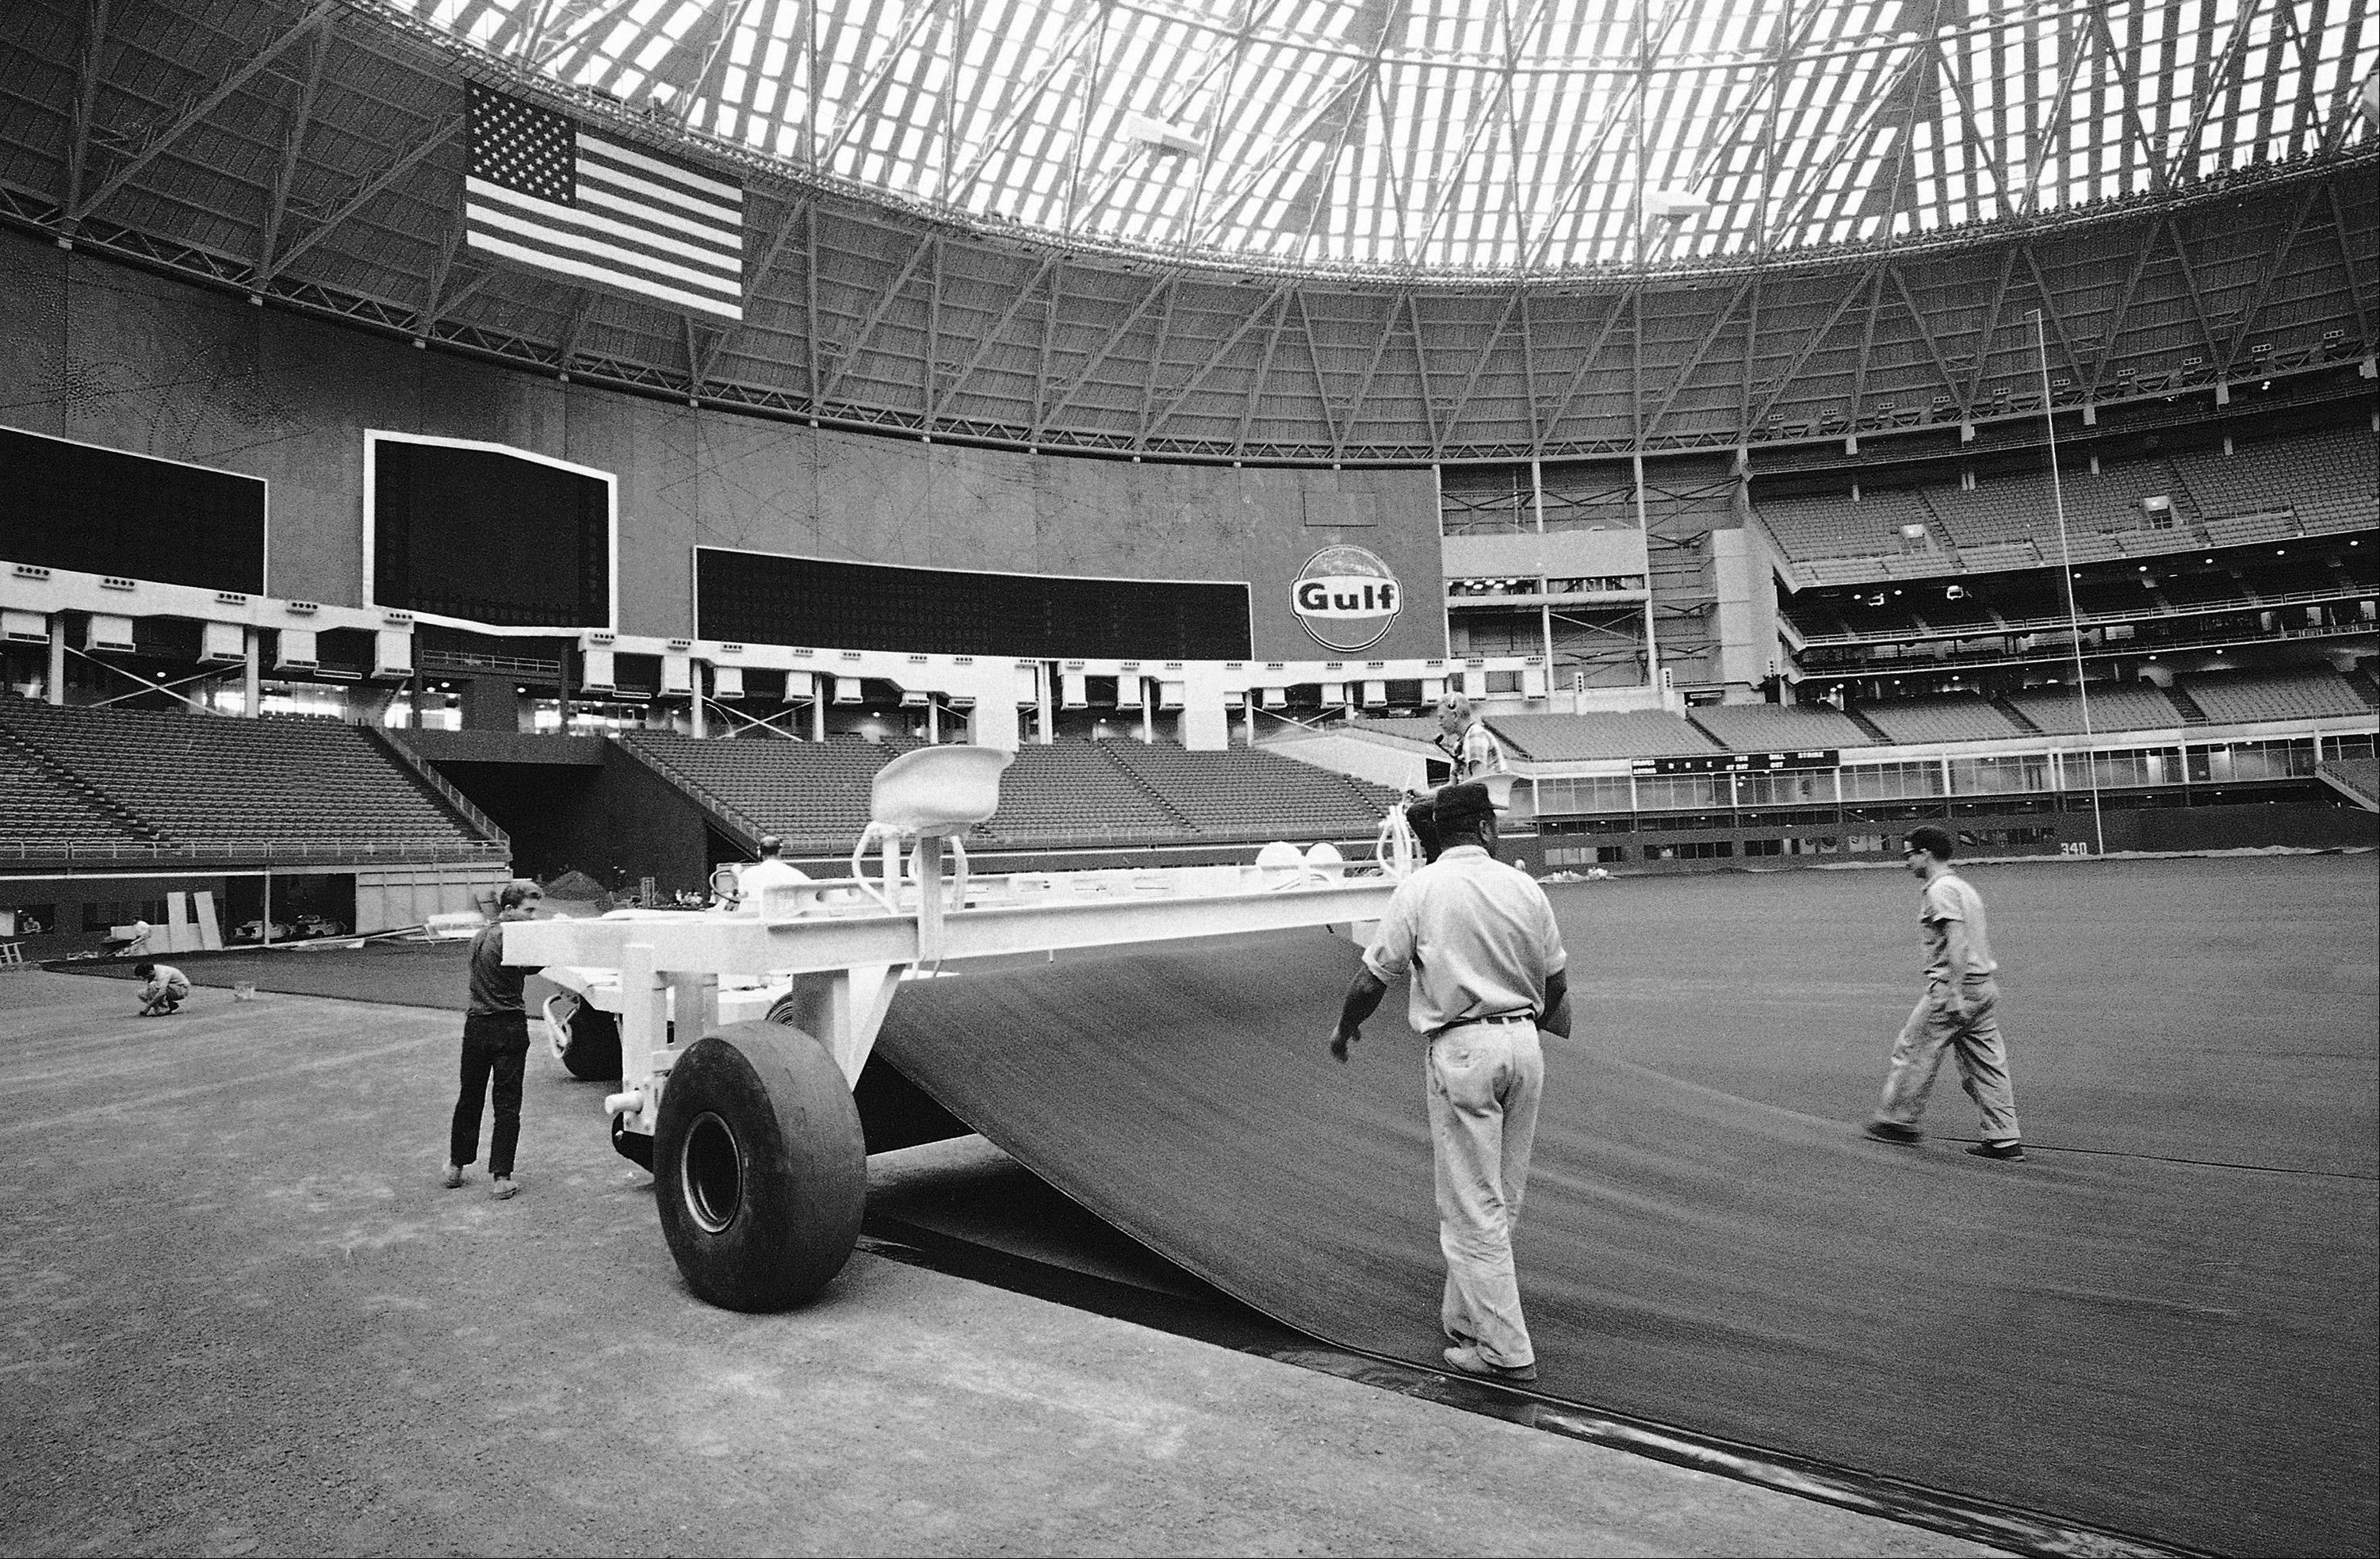 The Astrodome in Houston, Texas is the world?s first covered baseball stadium. It keeps out the rain, the wind, the sleet, the snow and it also keeps out the sun. Because of the last attribute the grass doesn?t grow well at the Astrodome, so it?s being replaced. In its place ?Astroturf? is being installed. Astroturf is a green synthetic nylon that is installed like a wall-to-wall-carpet in strips 14-feet wide and costs $2.00 per square feet. When the old cry of ?play ball? is heard the Astroturf is all zipped together and the fielders can chase fly balls all day without the slightest fear of stepping in a gopher hole. Workmen zipper up the Astroturf carpet completely covered the outfield, workers spread the warning track gravel along the fence in Houston on July 25, 1966. (AP Photo)